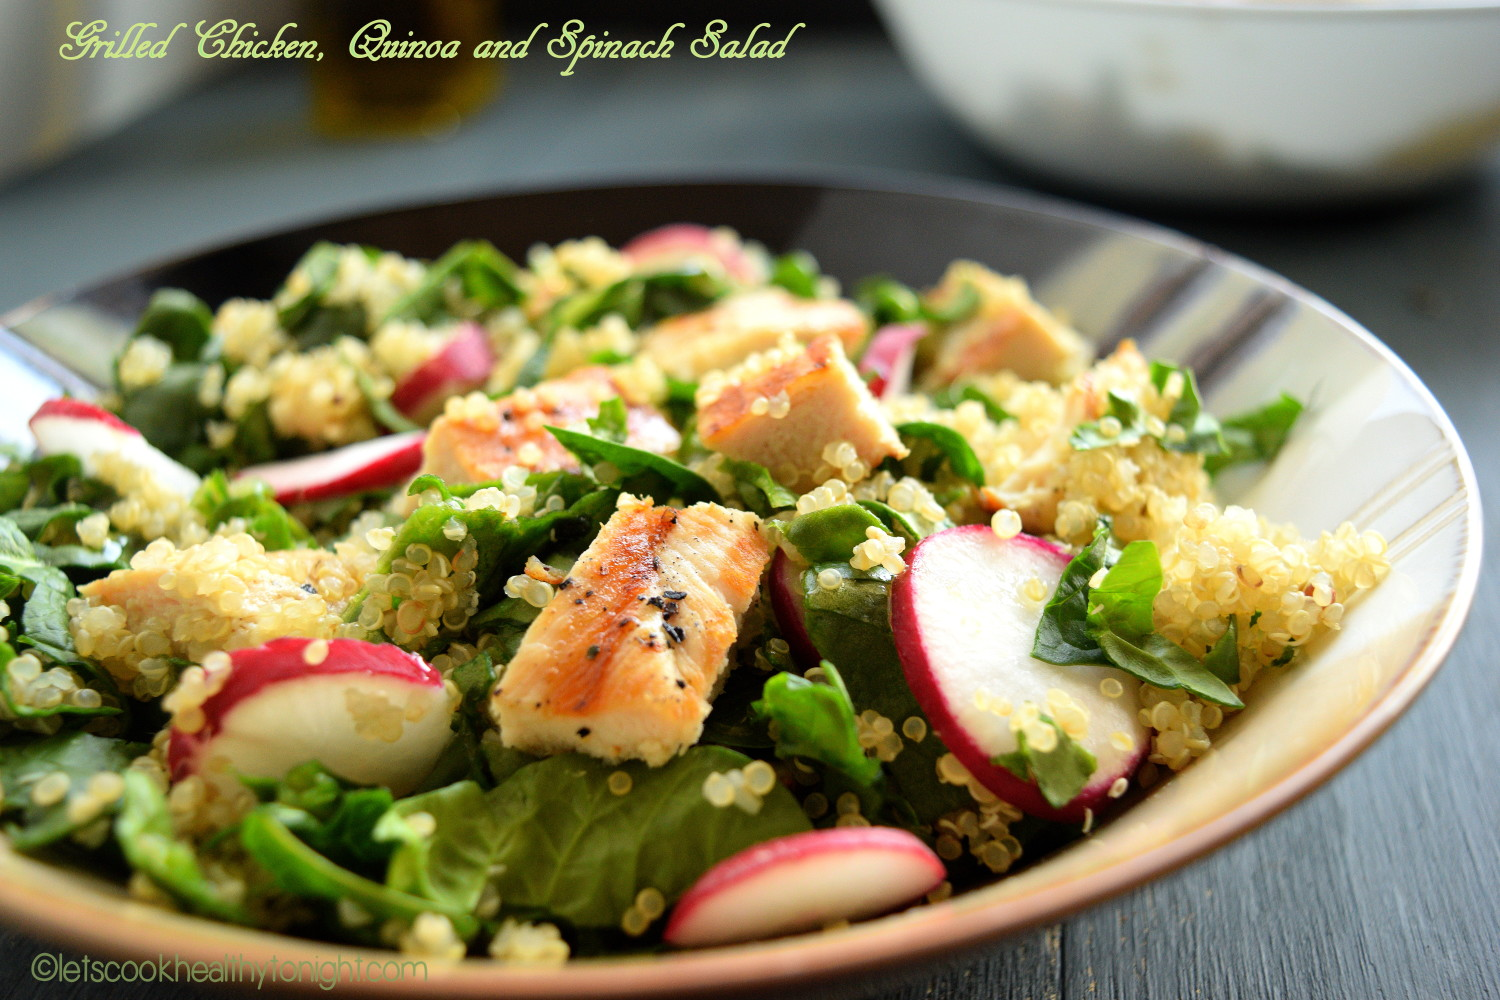 Grilled Chicken, Quinoa and Spinach Salad